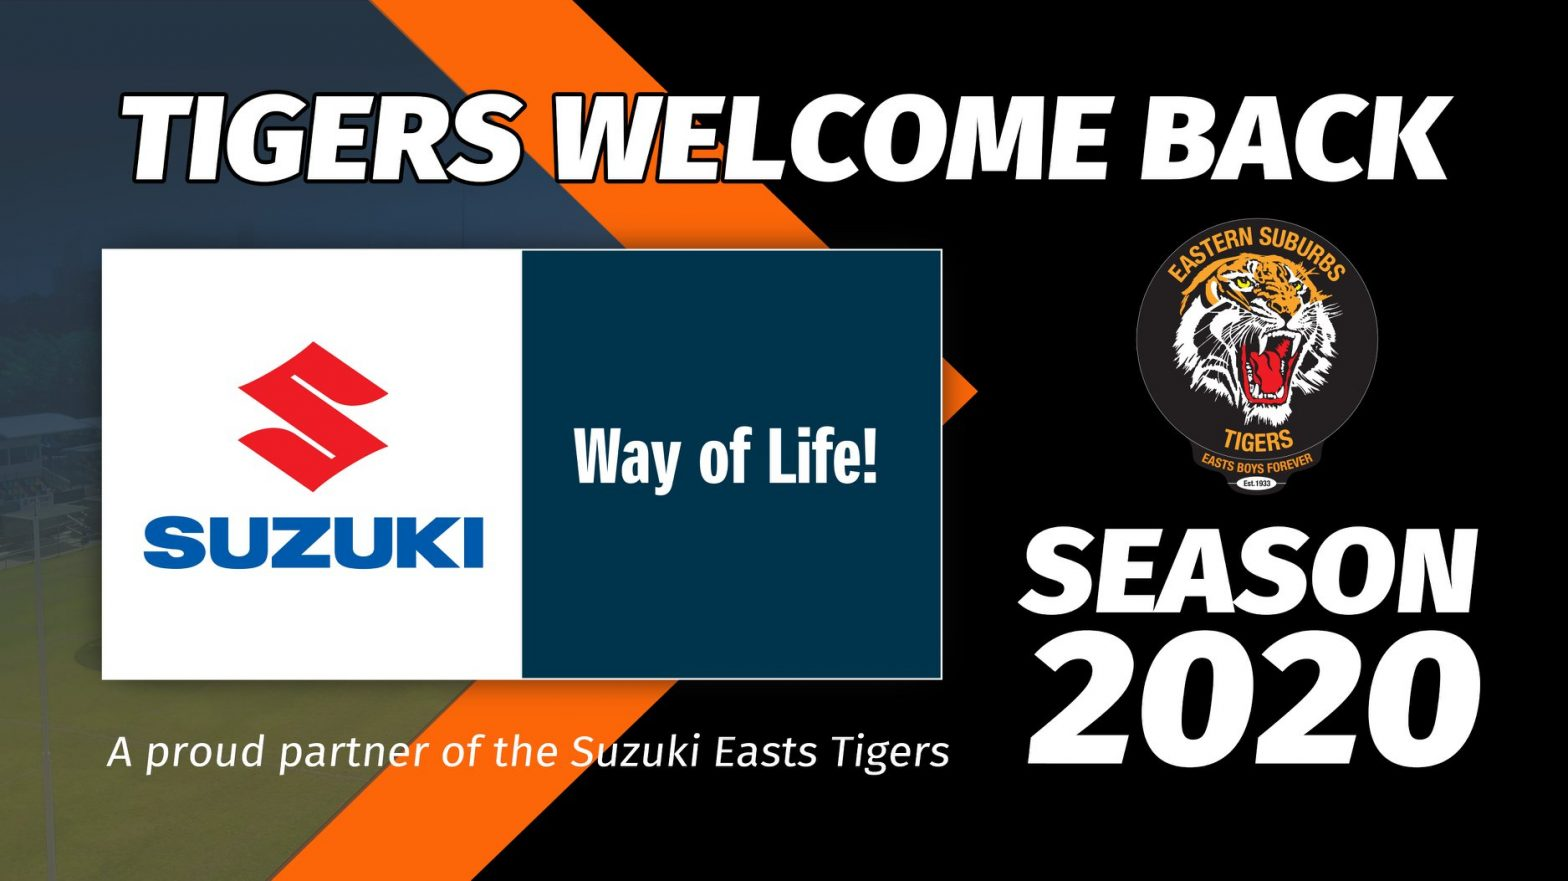 The Easts Tigers welcome back our long-time partner Suzuki Queensland as our Principal Partner for the 2020 Season